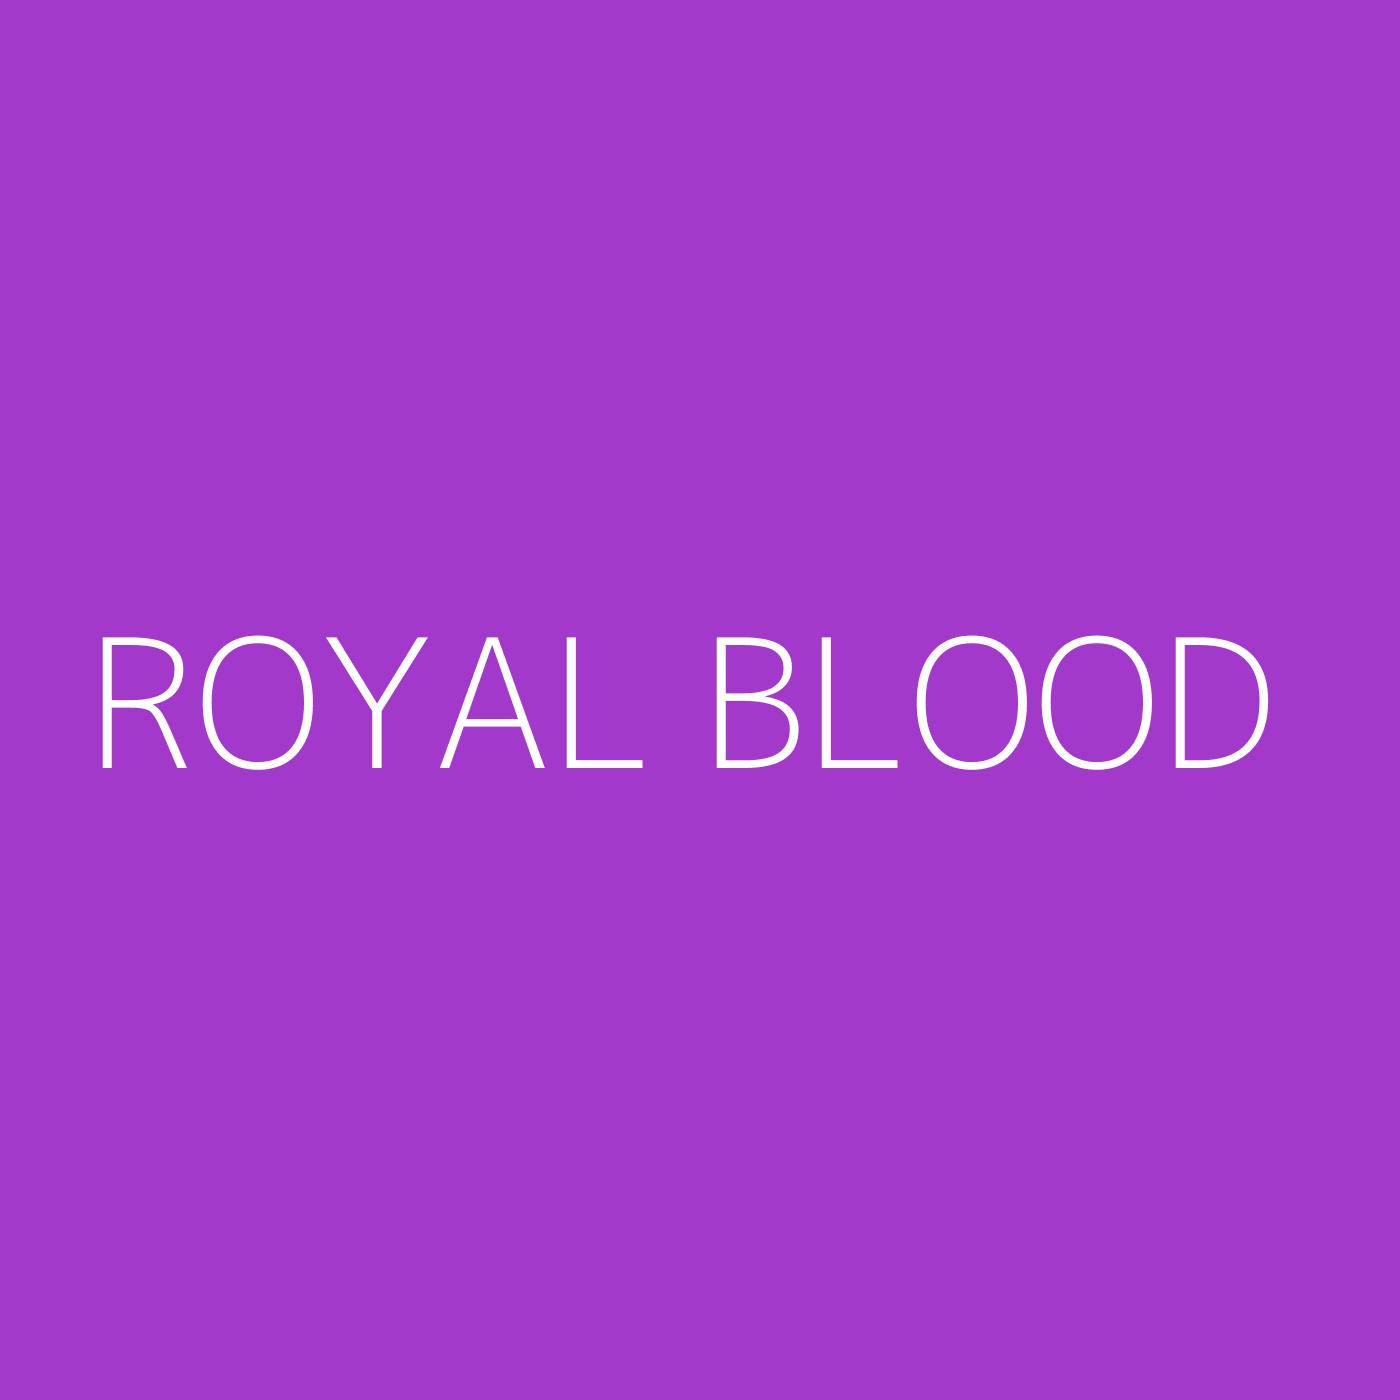 Royal Blood Playlist Artwork